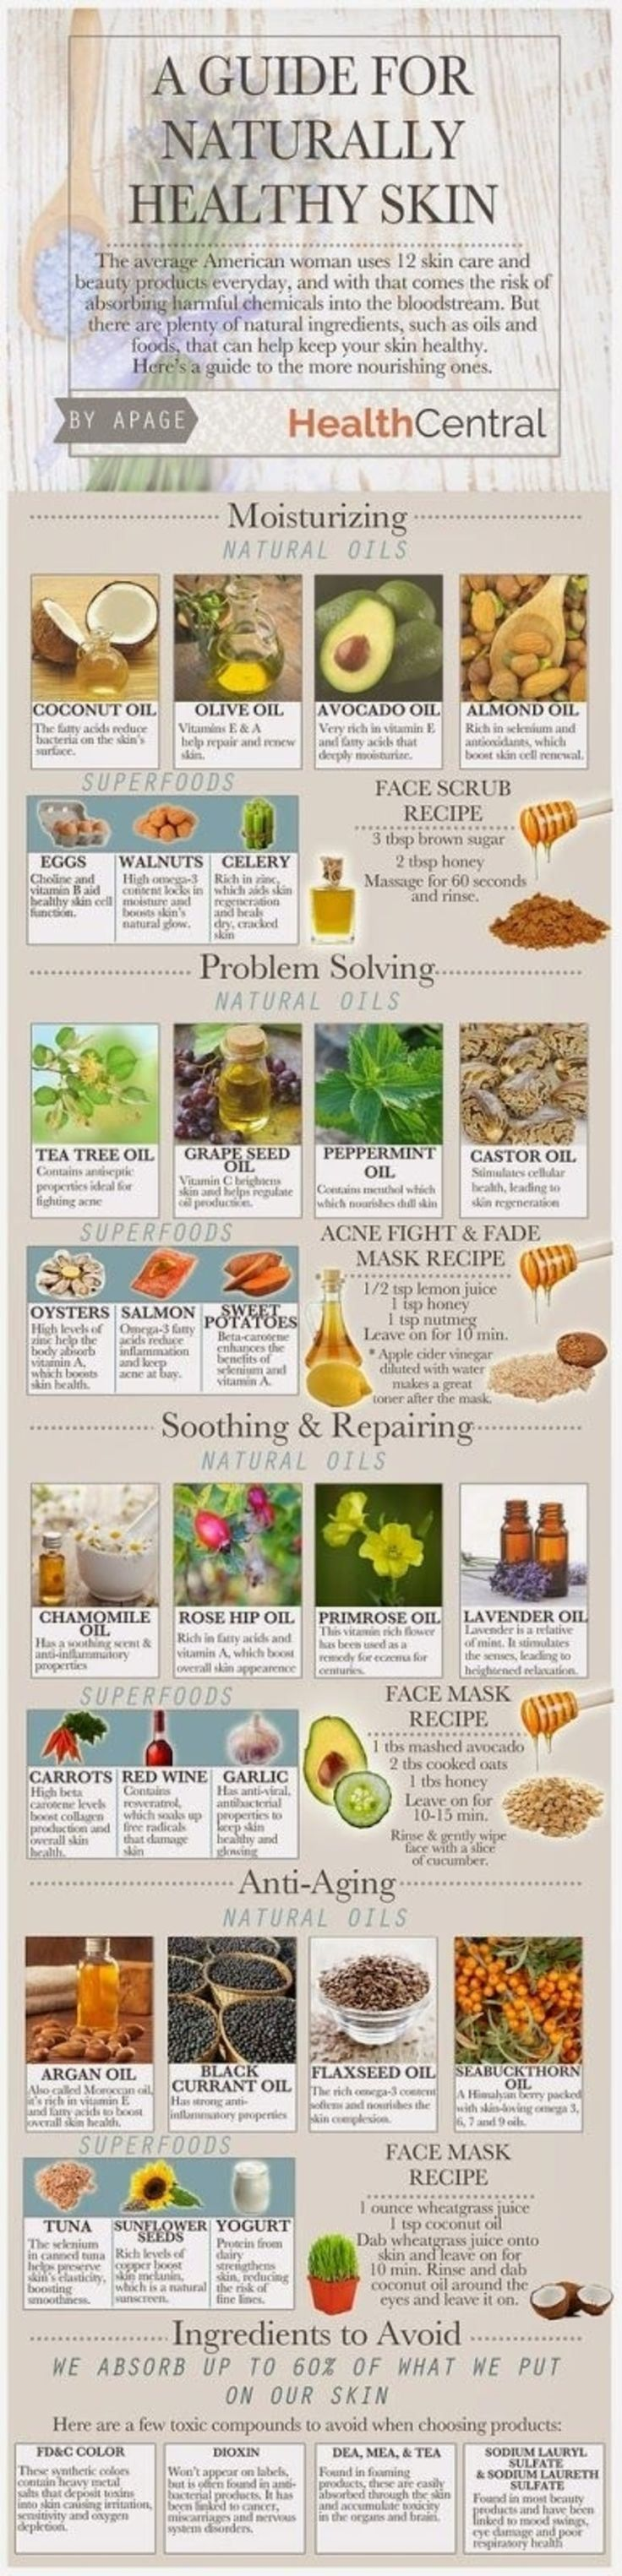 A Guide for Naturally Healthy Skin #healthy #skin